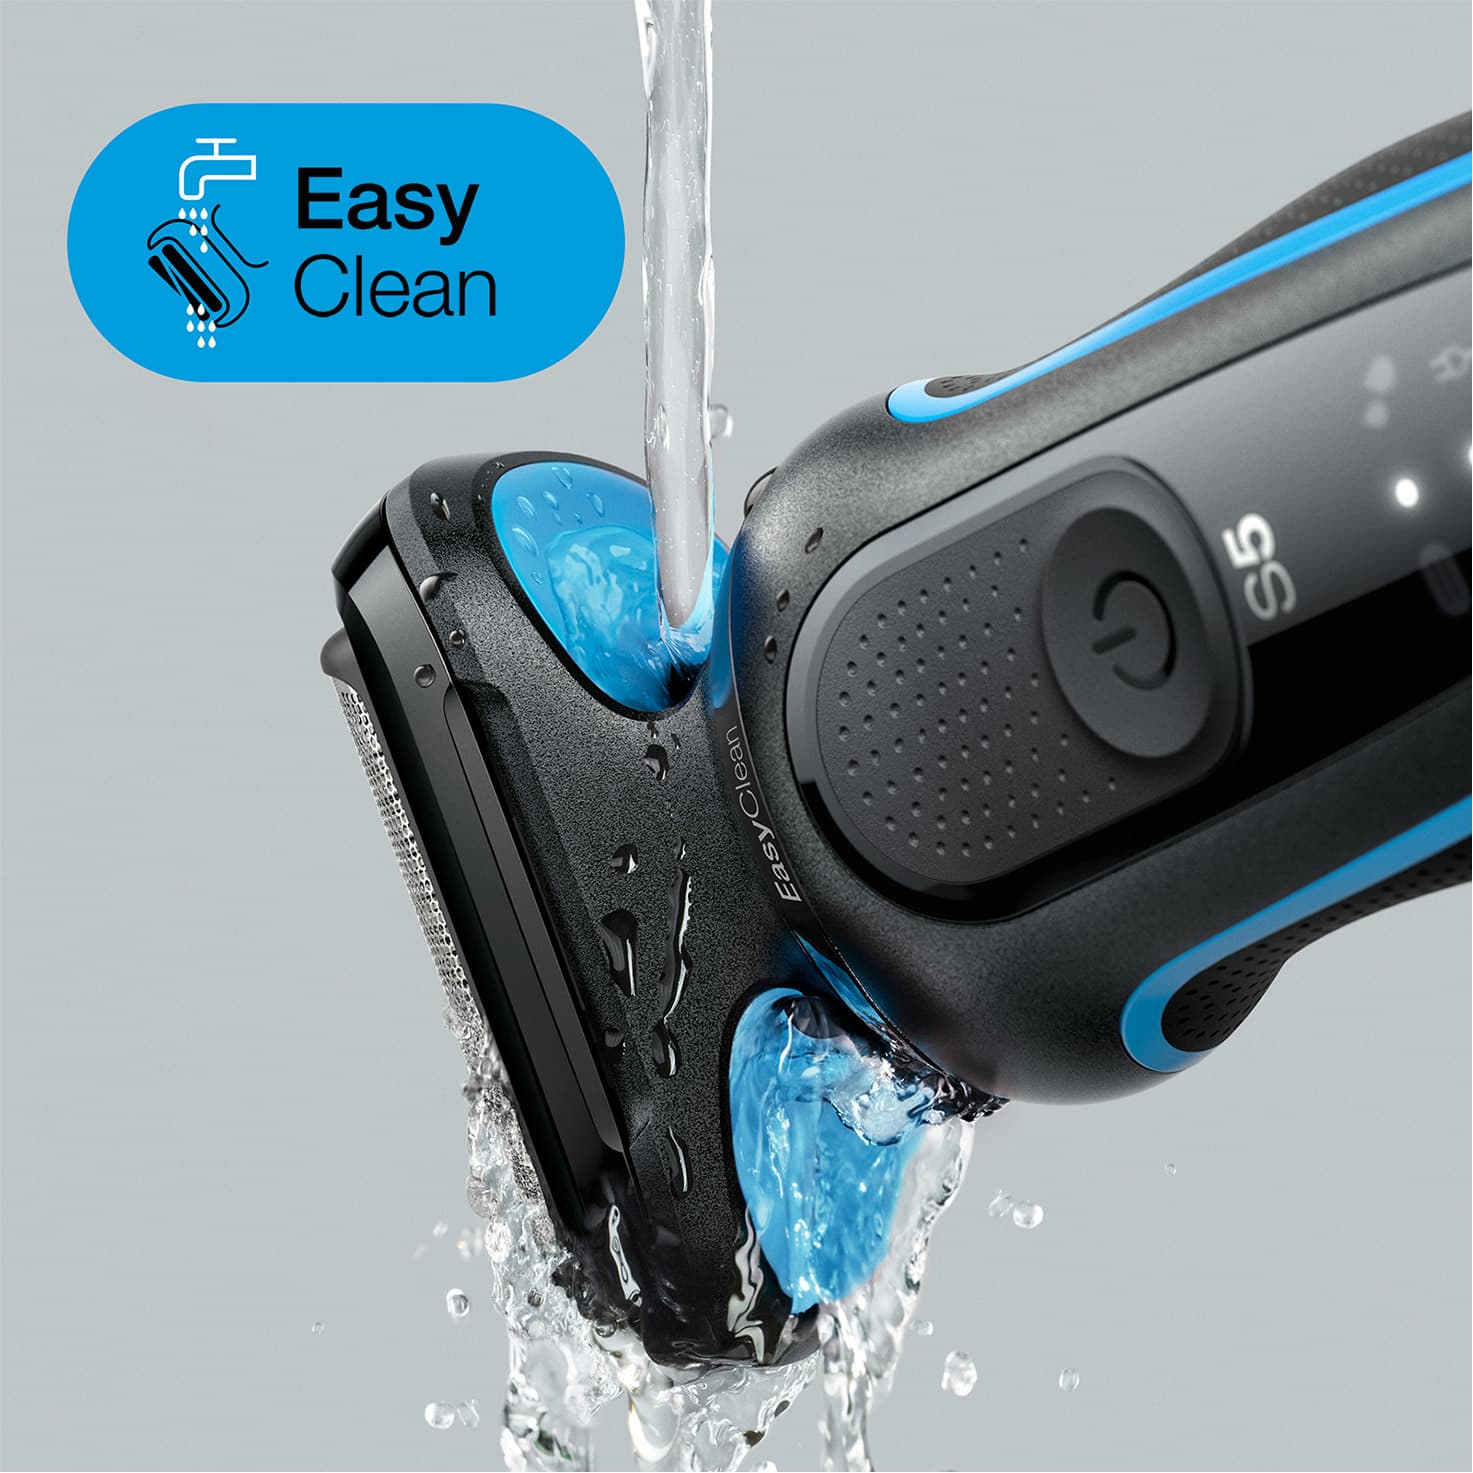 Braun Series 5 50-Electric Shaver Easy Clean